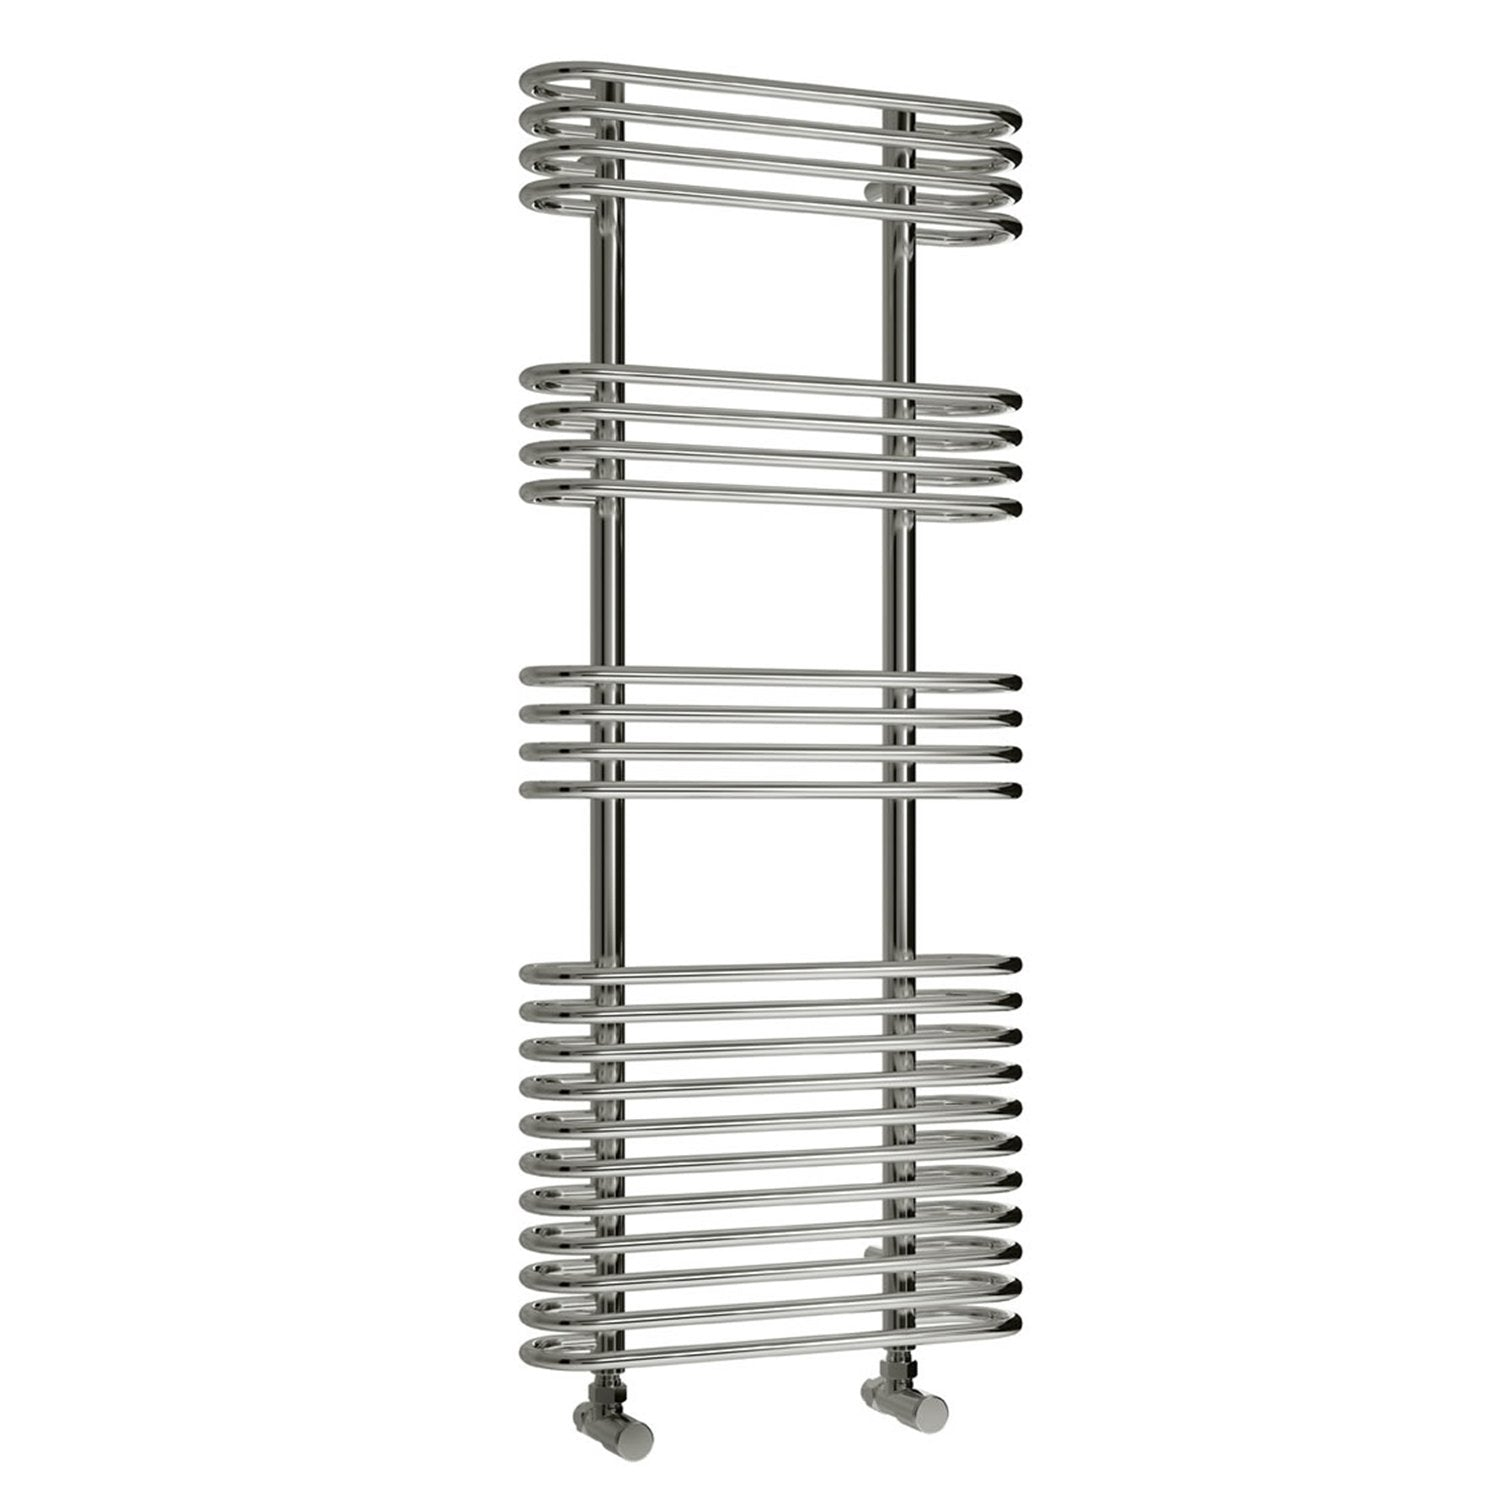 Reina Designer Mirus Vertical Chrome Heated Towel Rail Steel Radiator